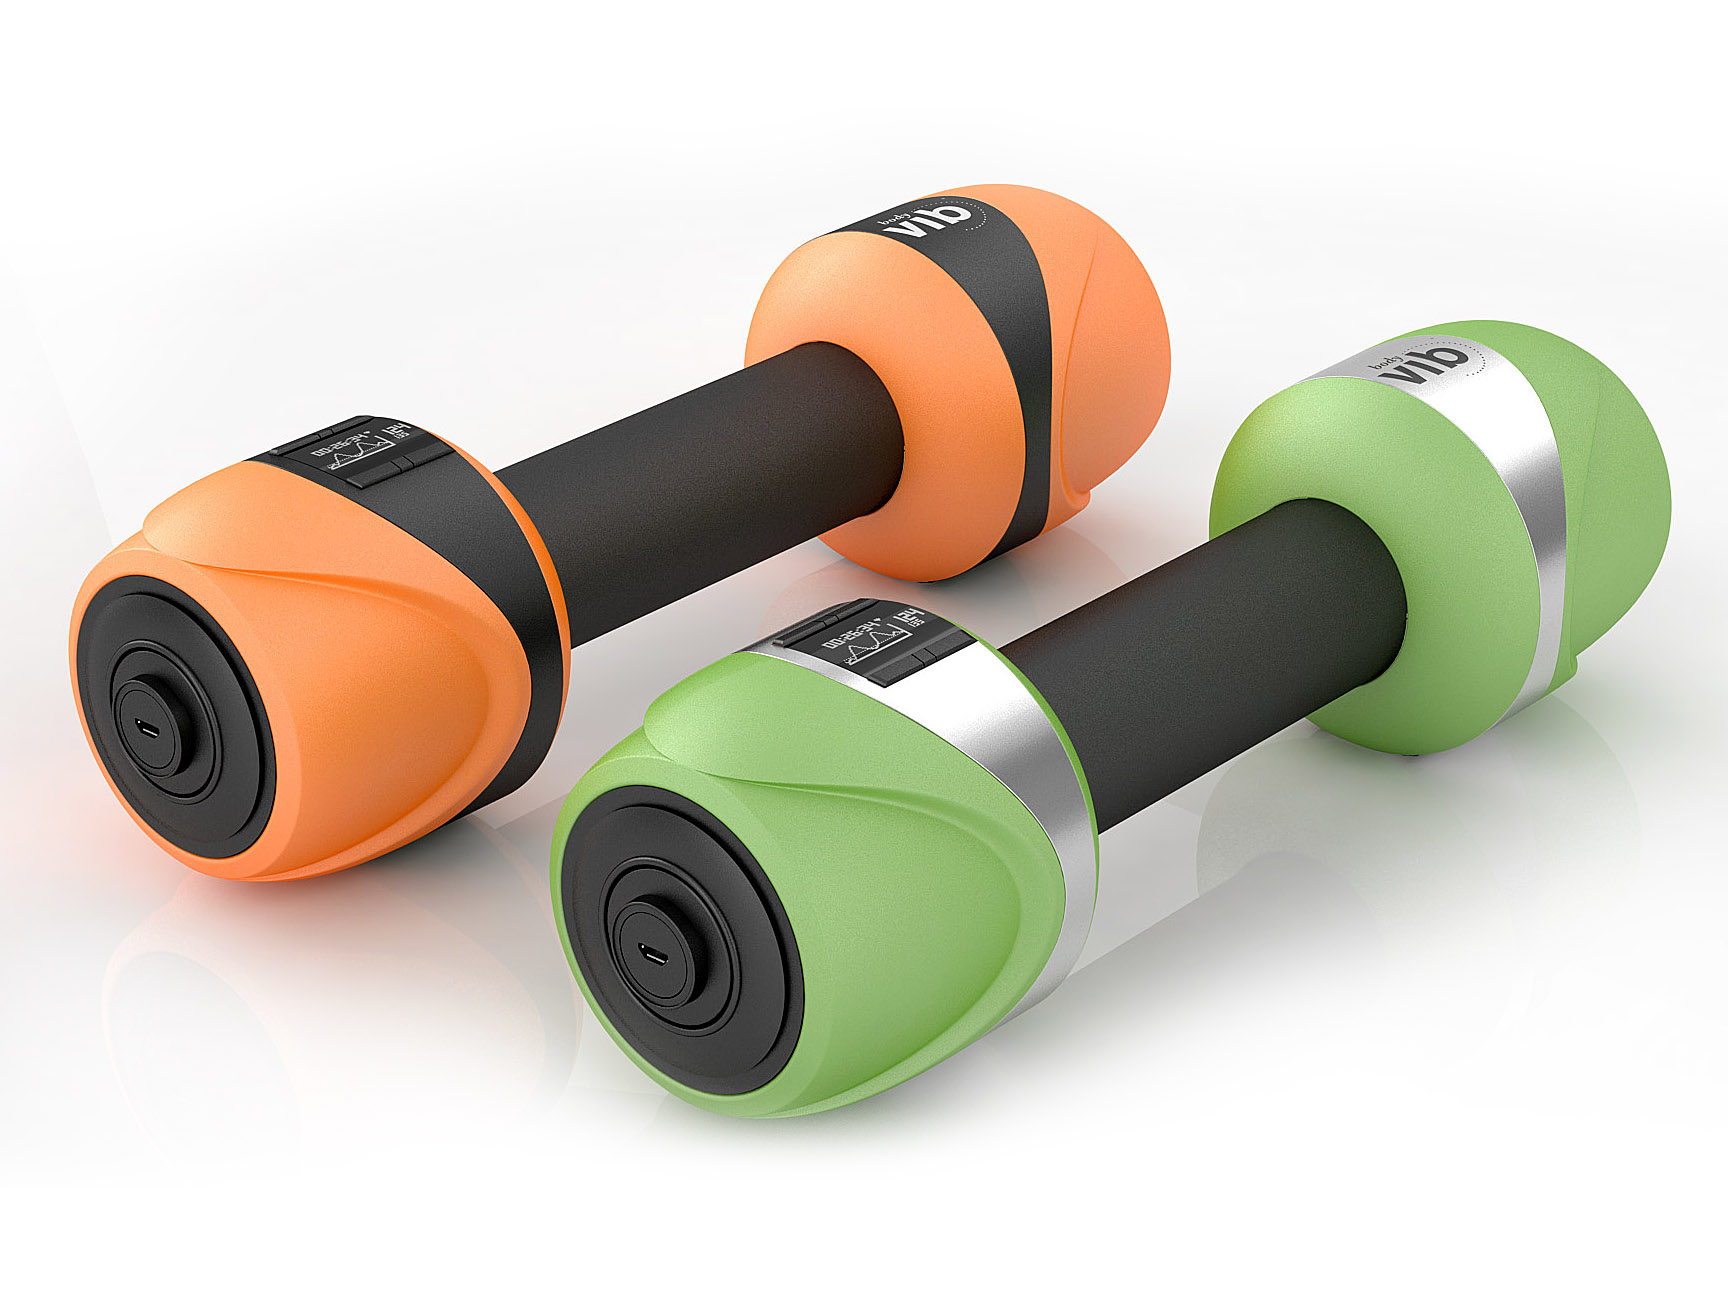 Vibrating Dumbbells Design